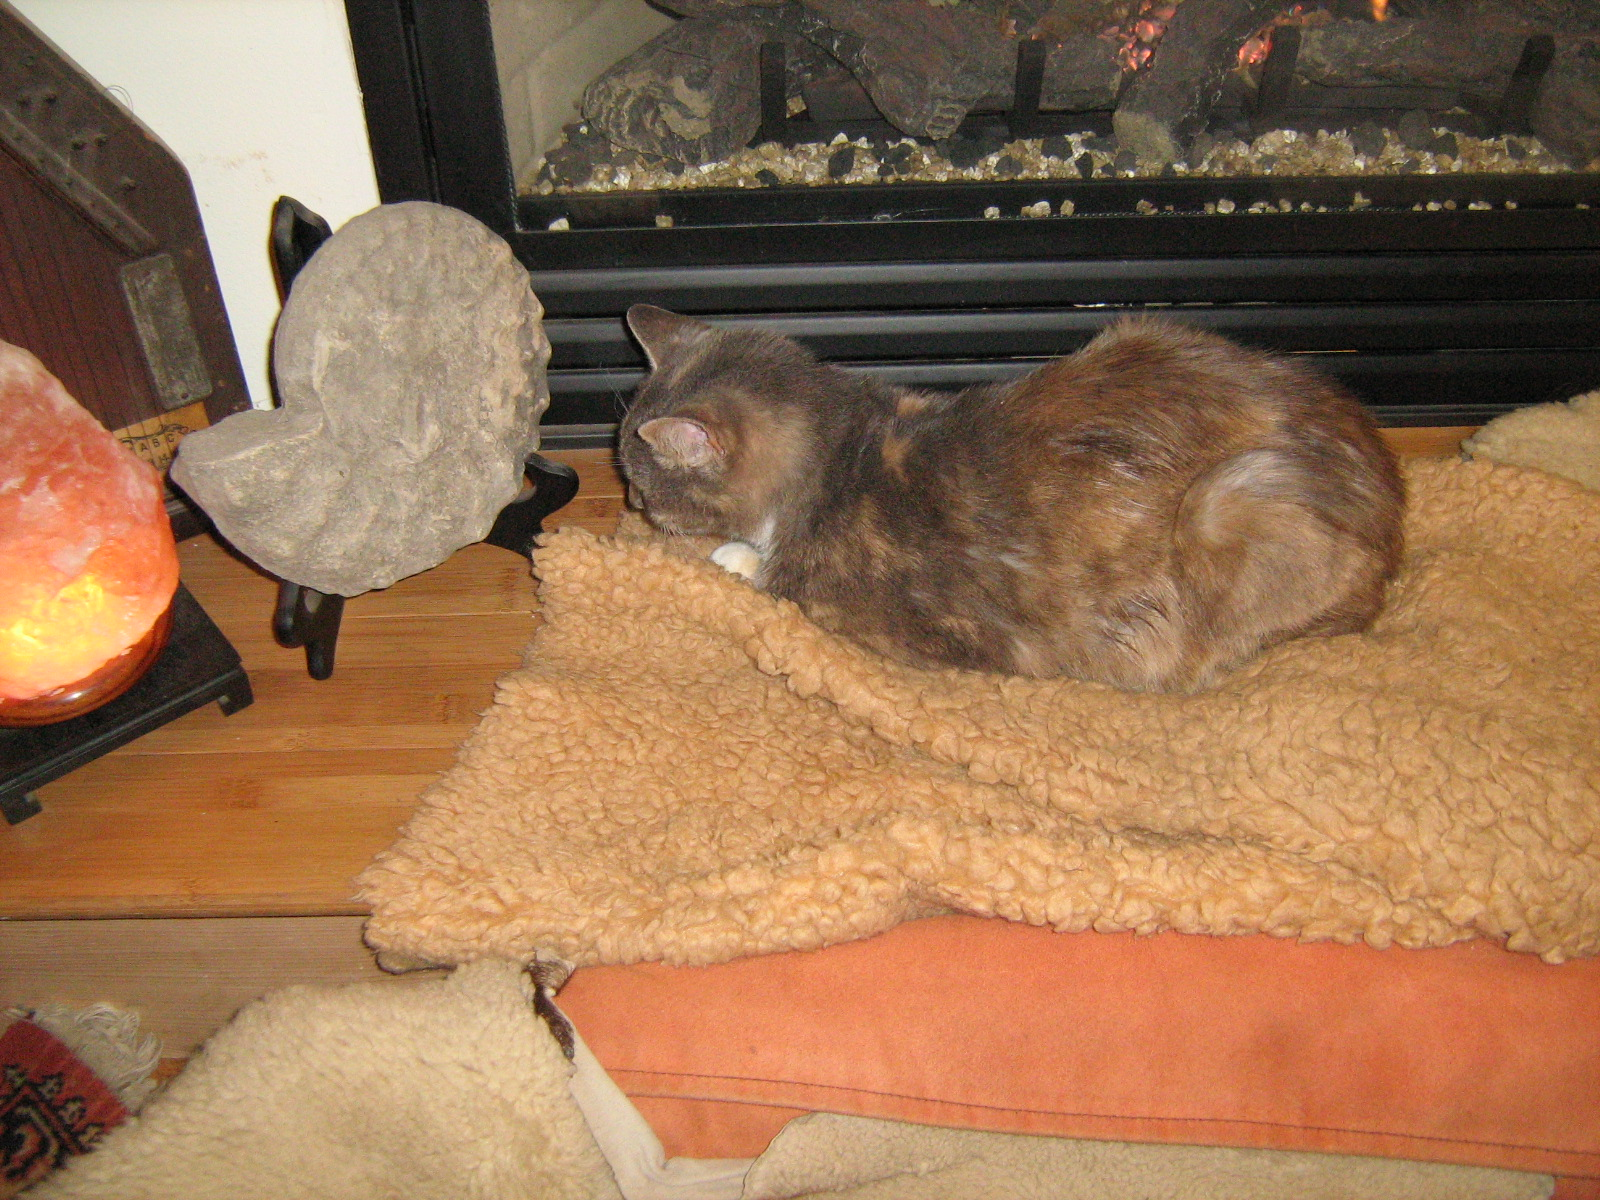 Frida on her bed in front of the fireplace.